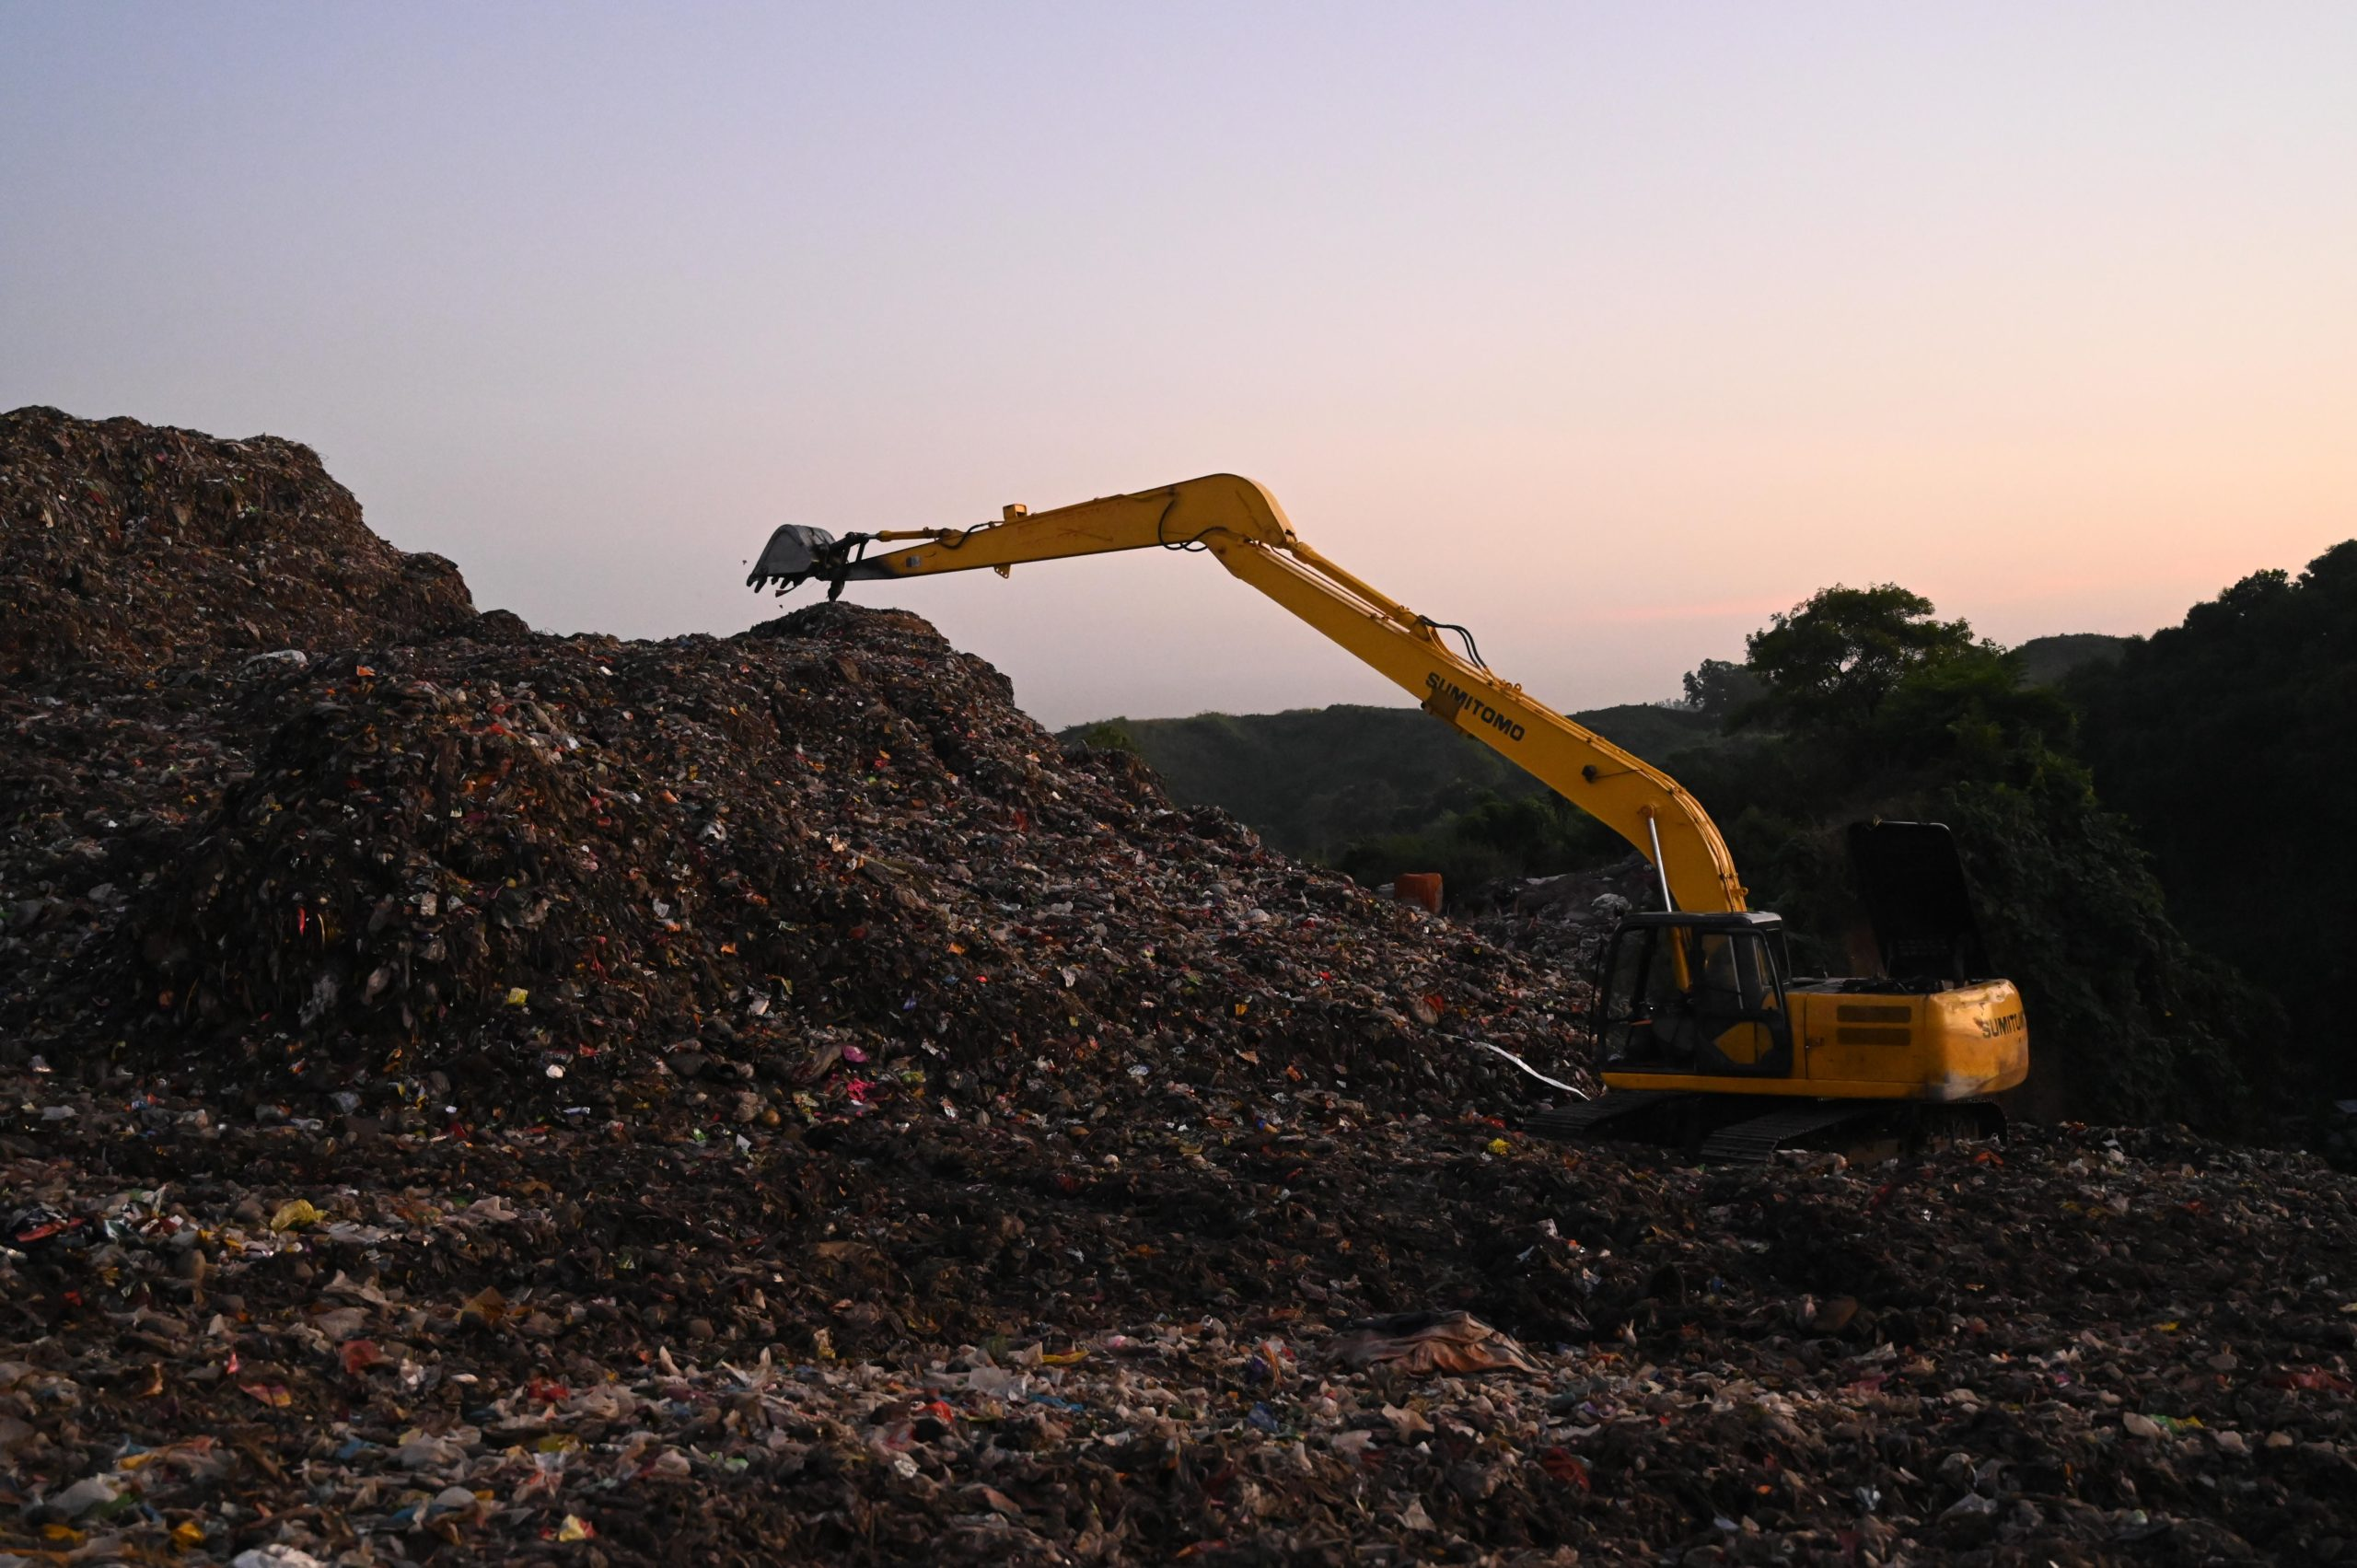 Why Is Landfill Bad For The Environment?